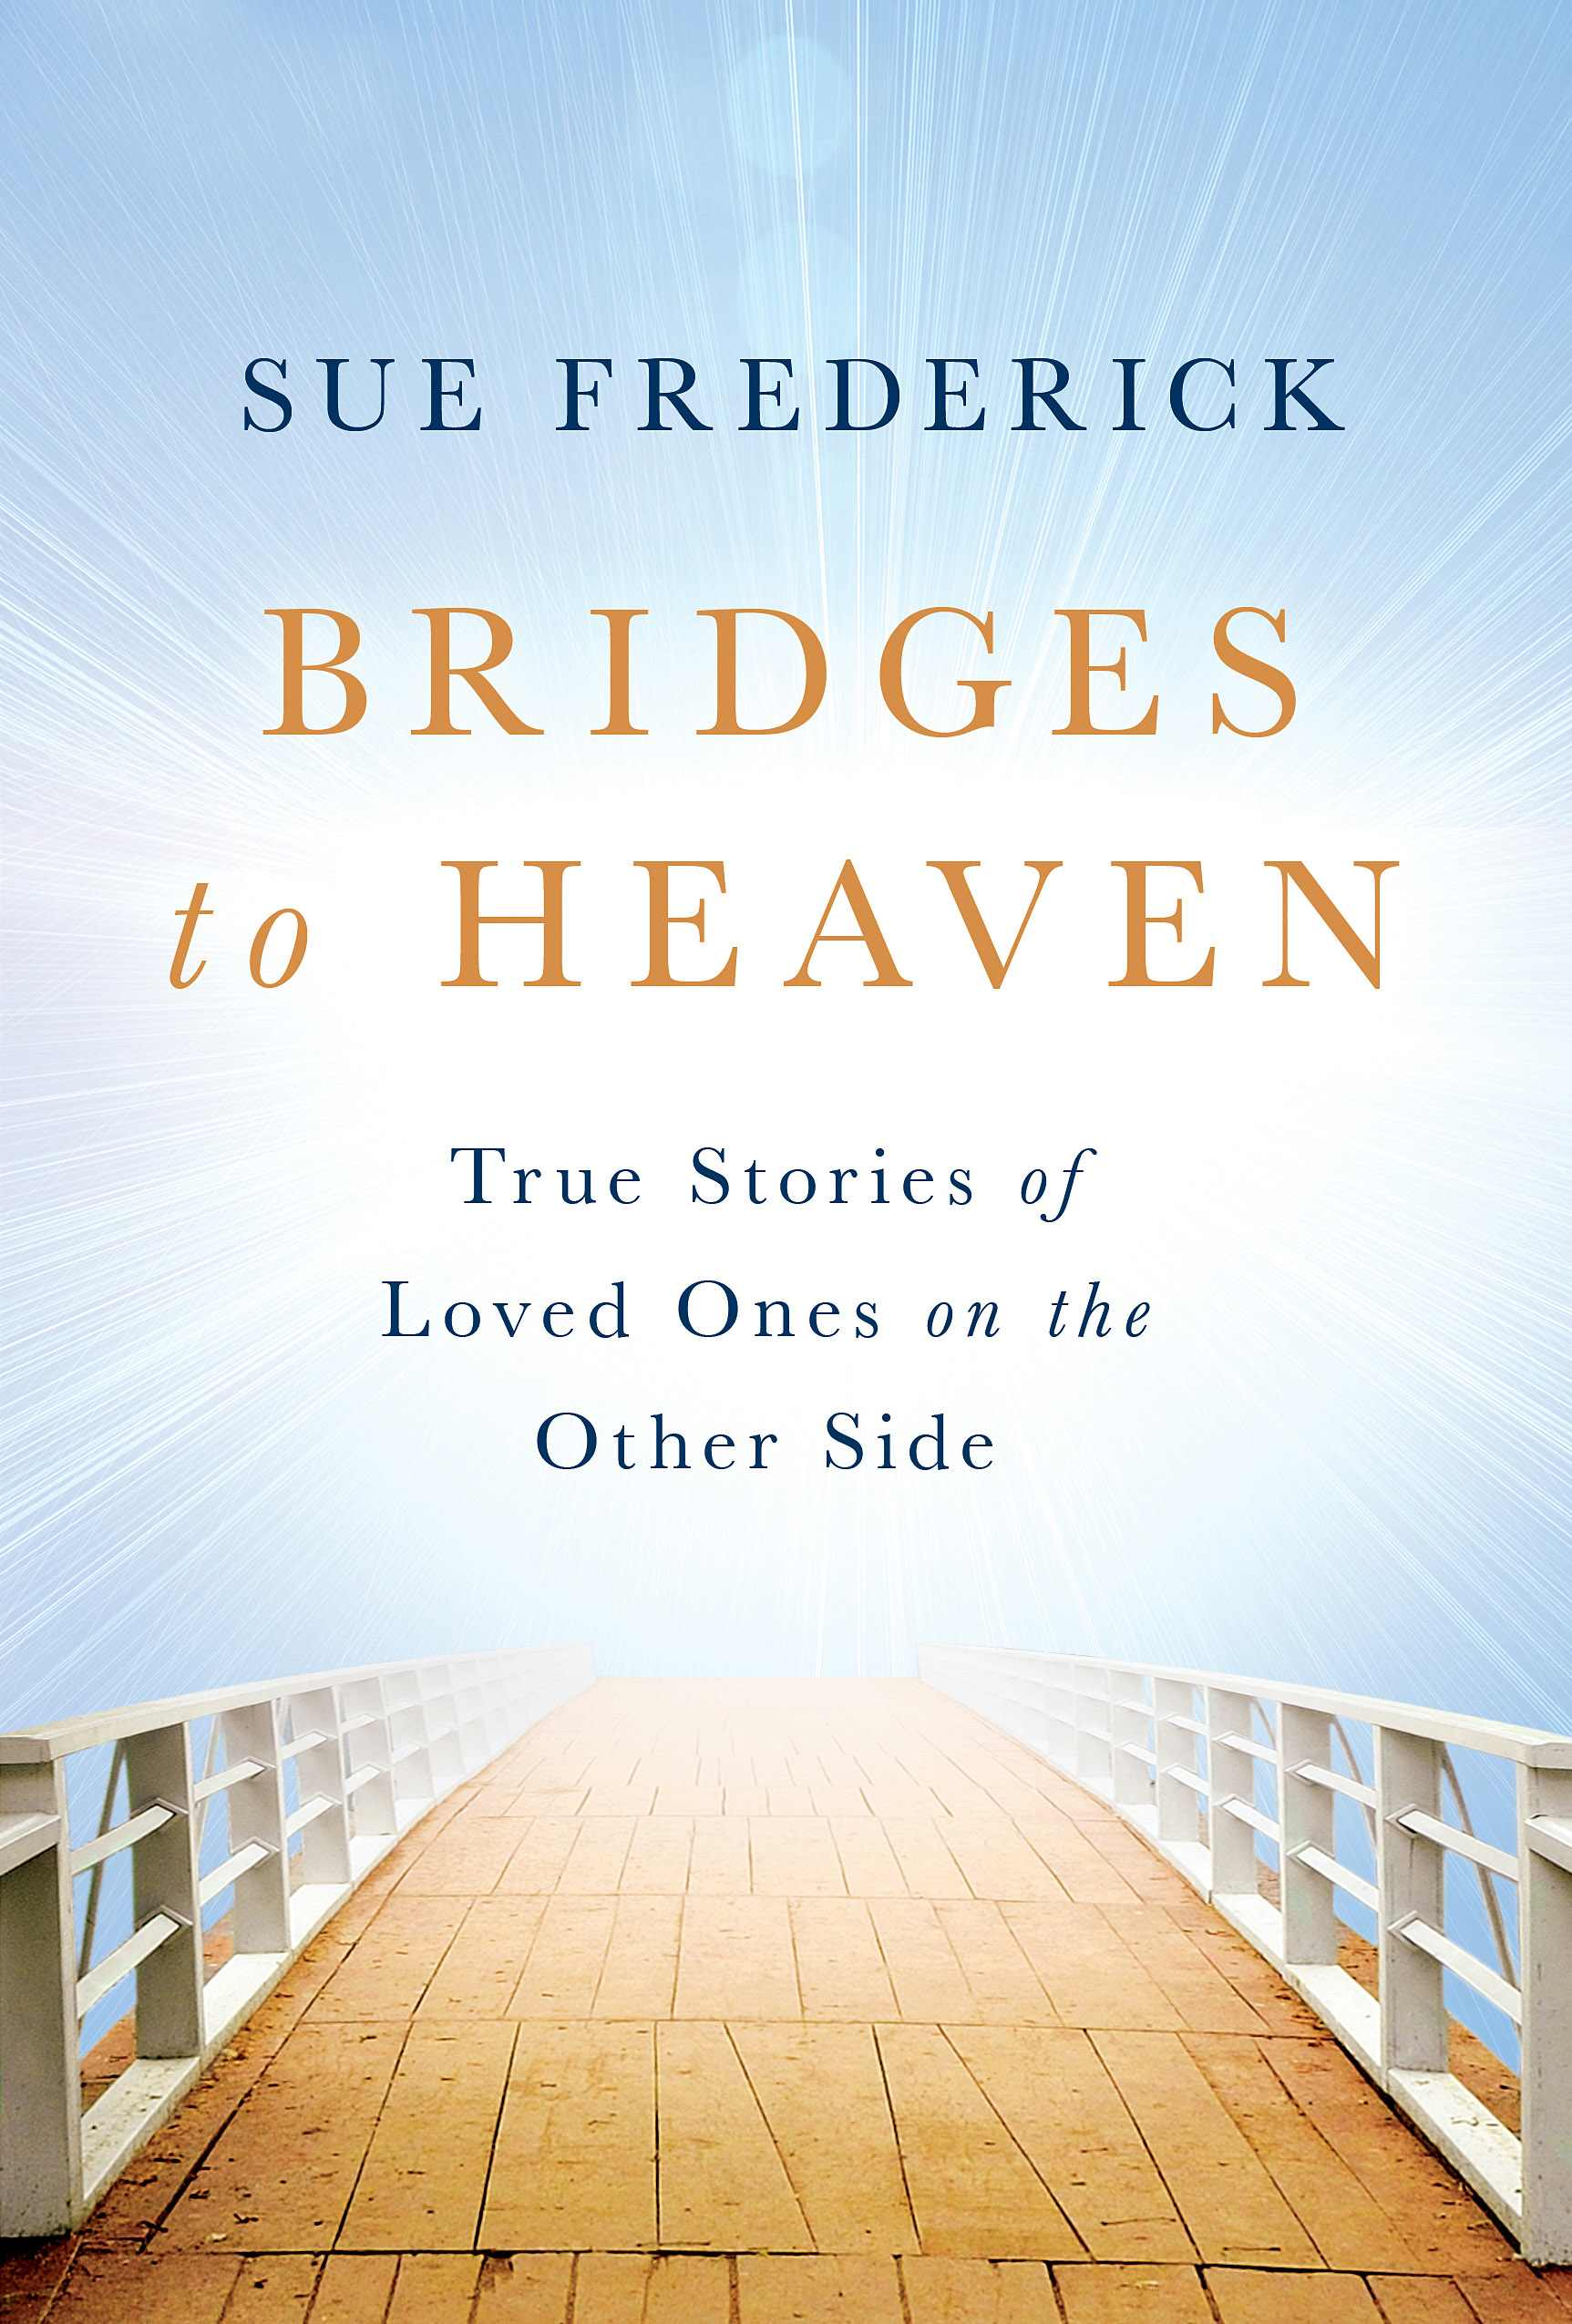 BridgestoHeaven2013Cover.jpg